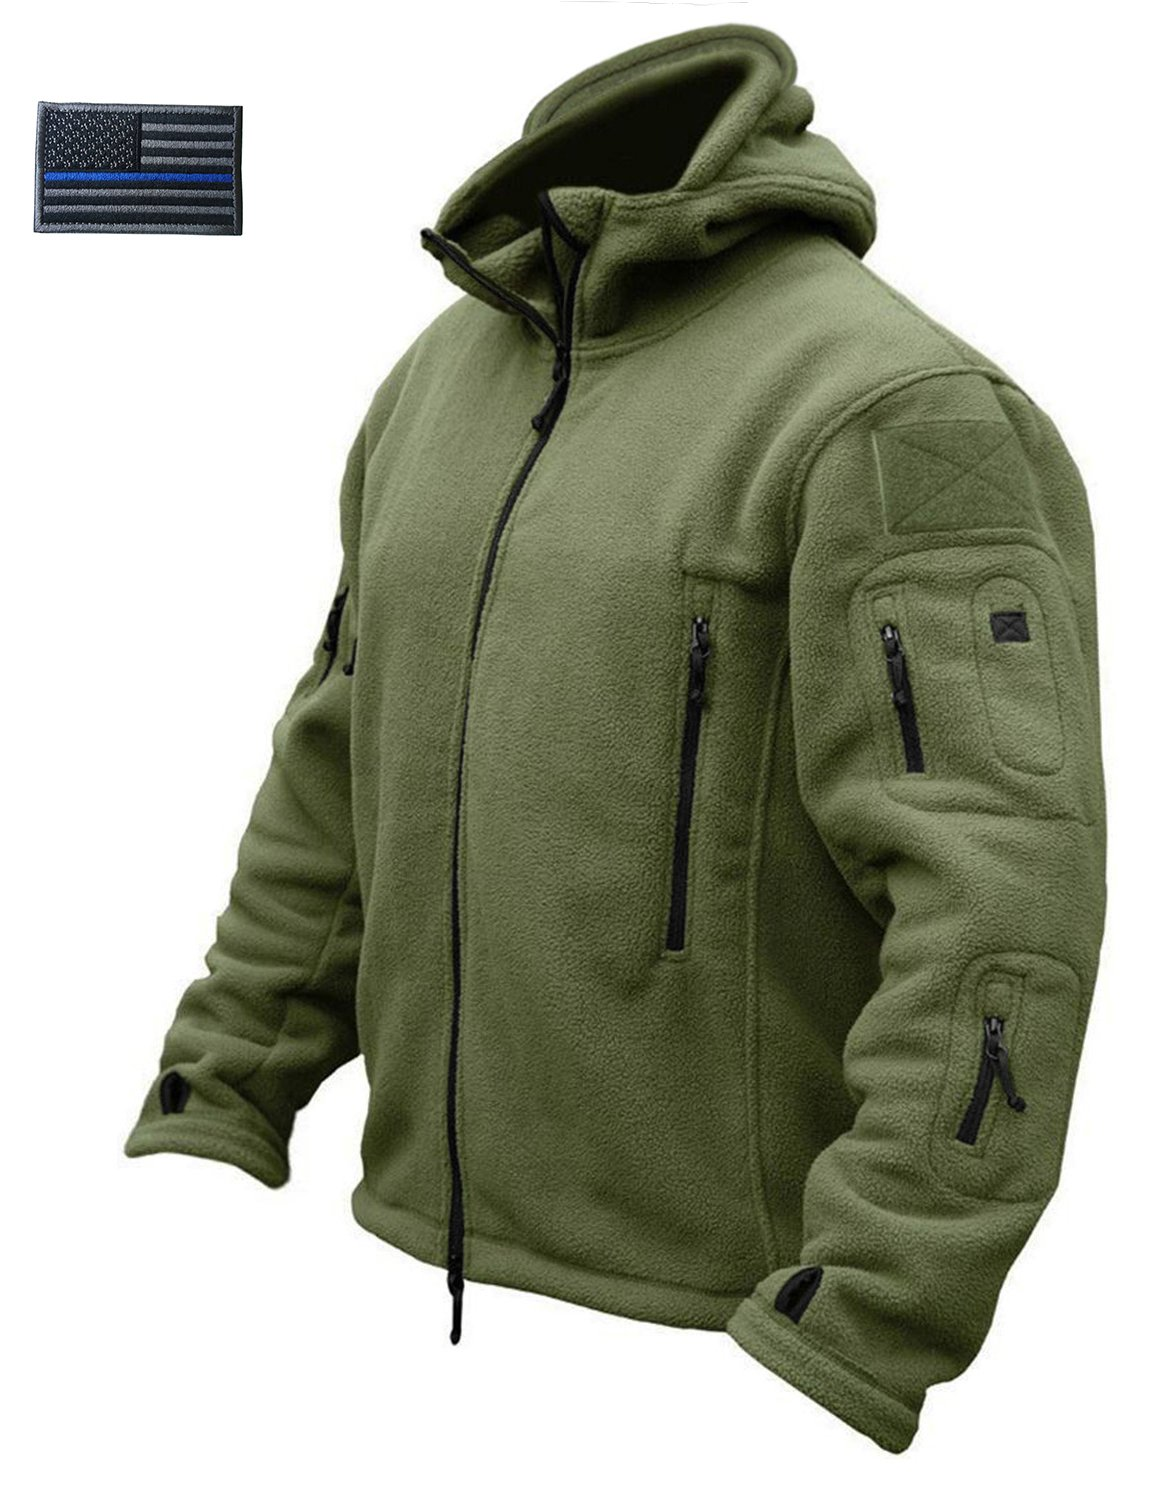 CRYSULLY Men's Tactical Front Zip Fleece Lining Hunting Mountaineering Jackets Windbreaker Coat Army Green by CRYSULLY